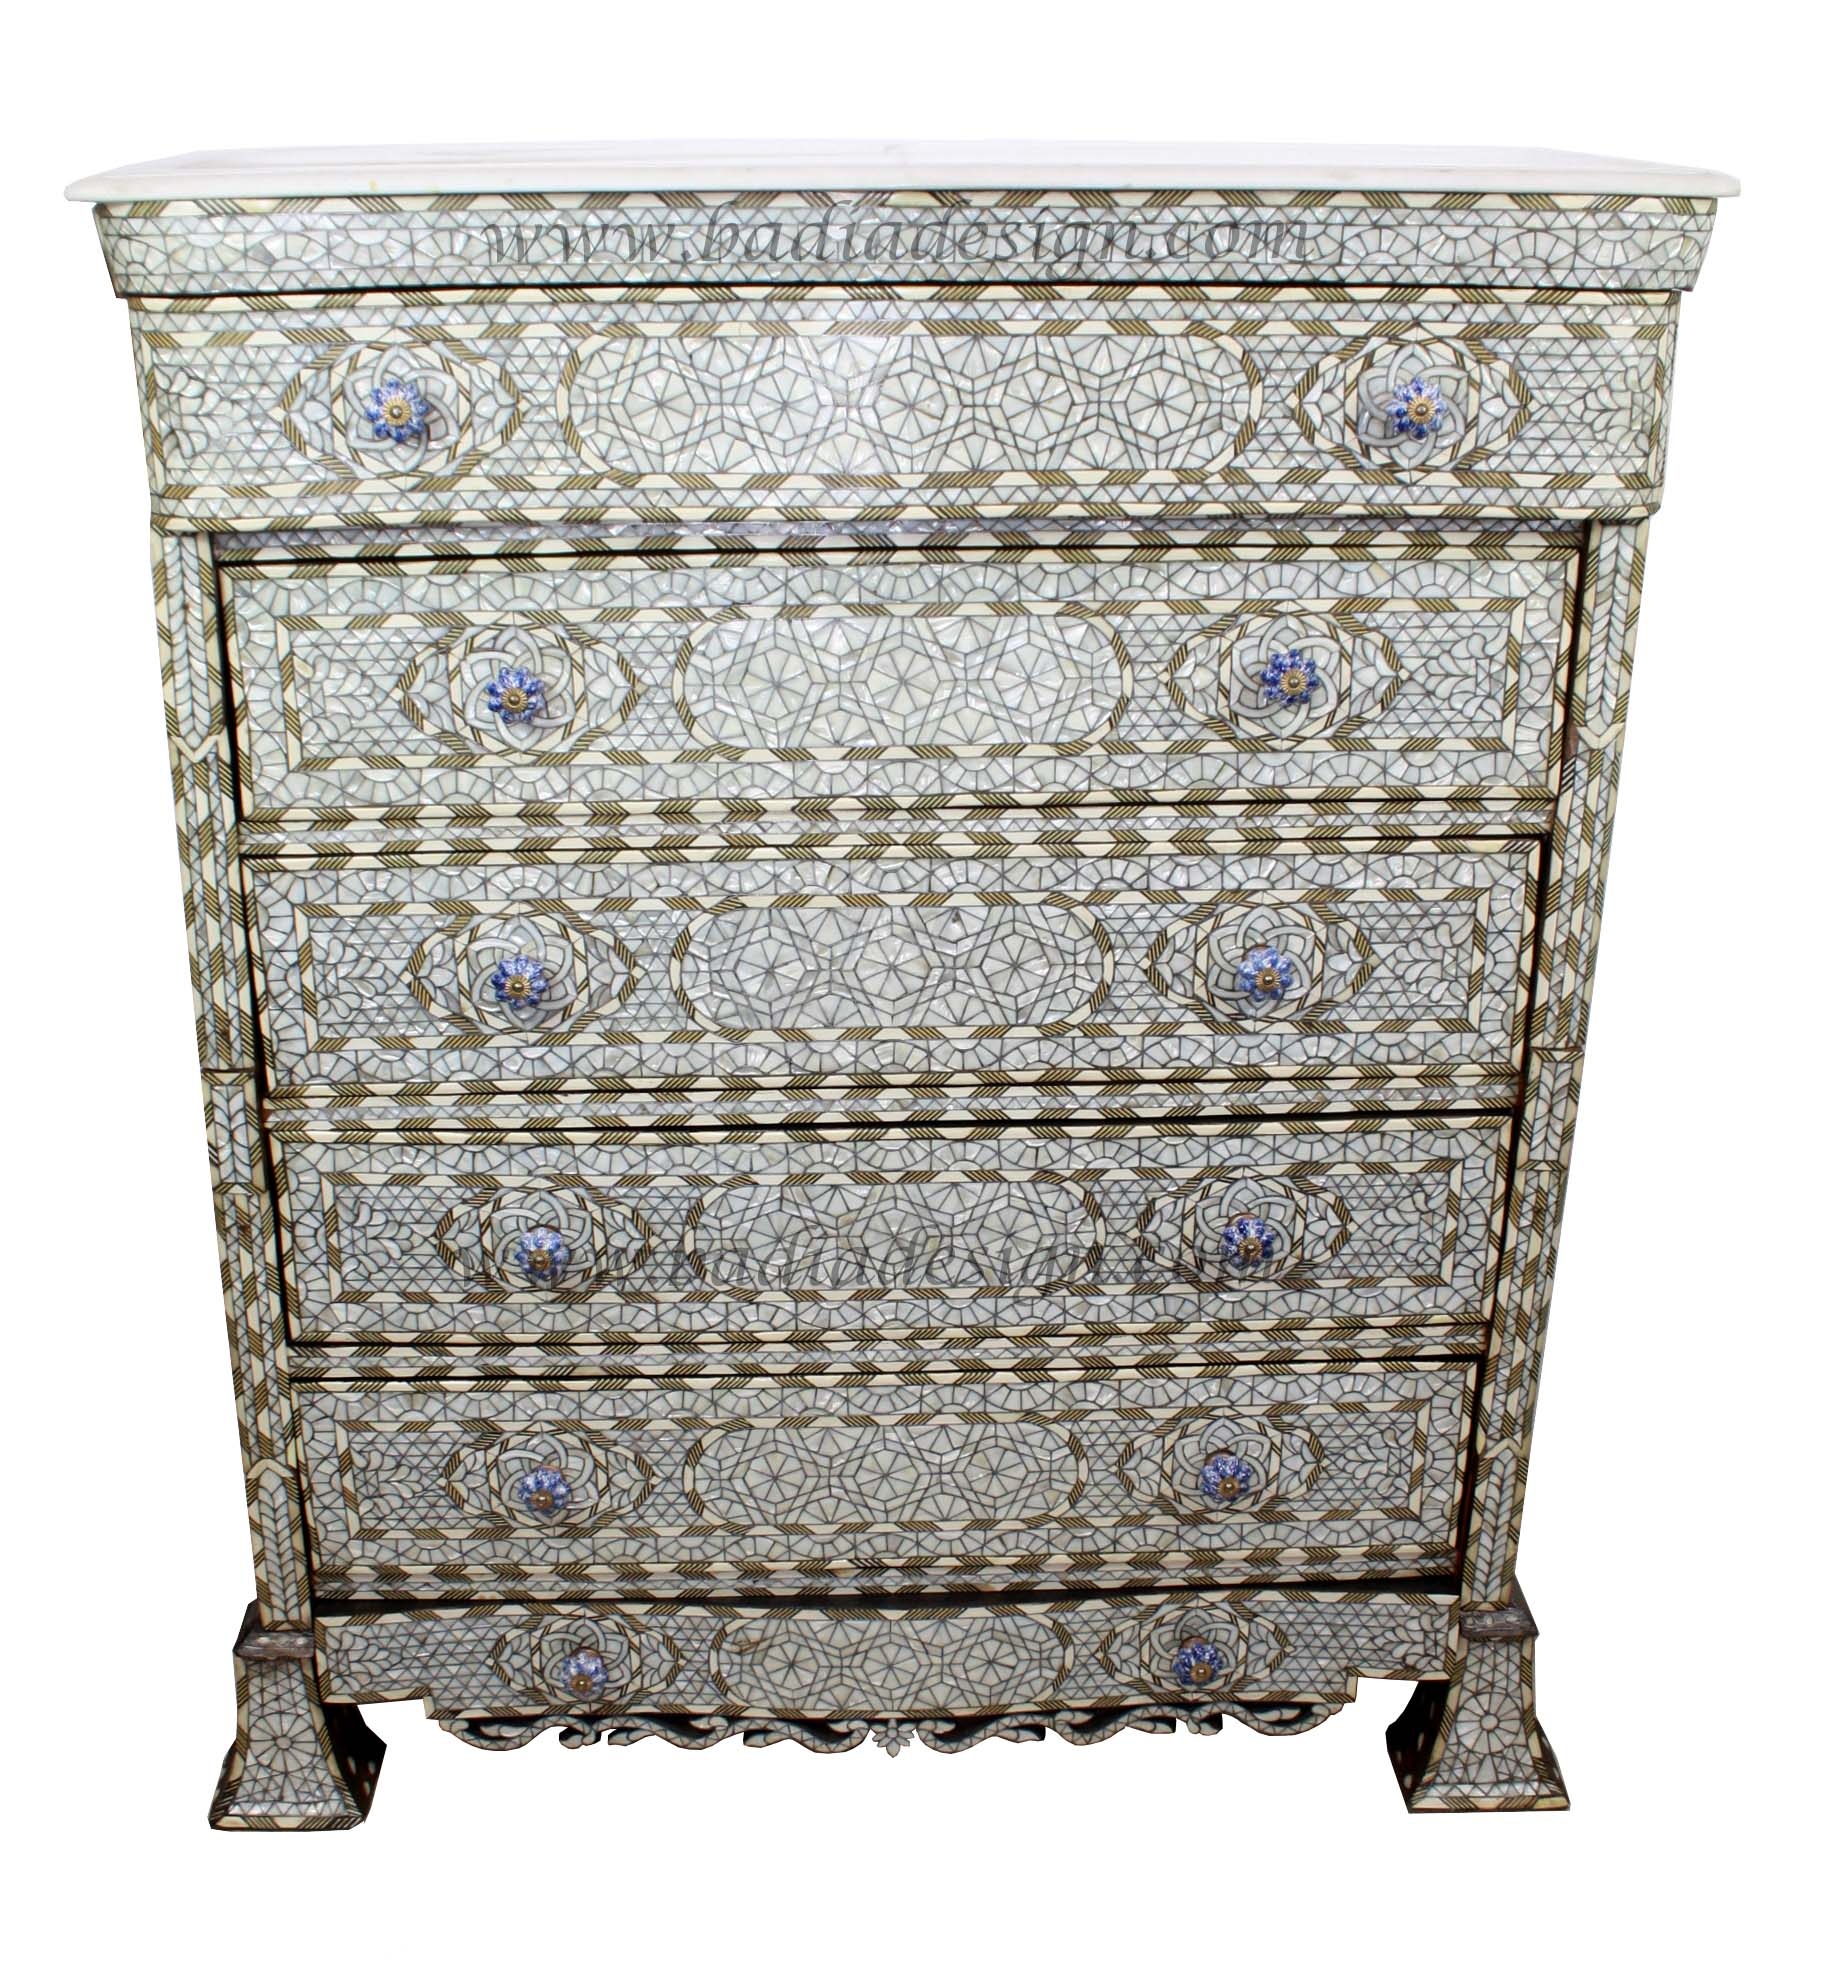 high-end-moroccan-furniture-mop-dr055-1.jpg